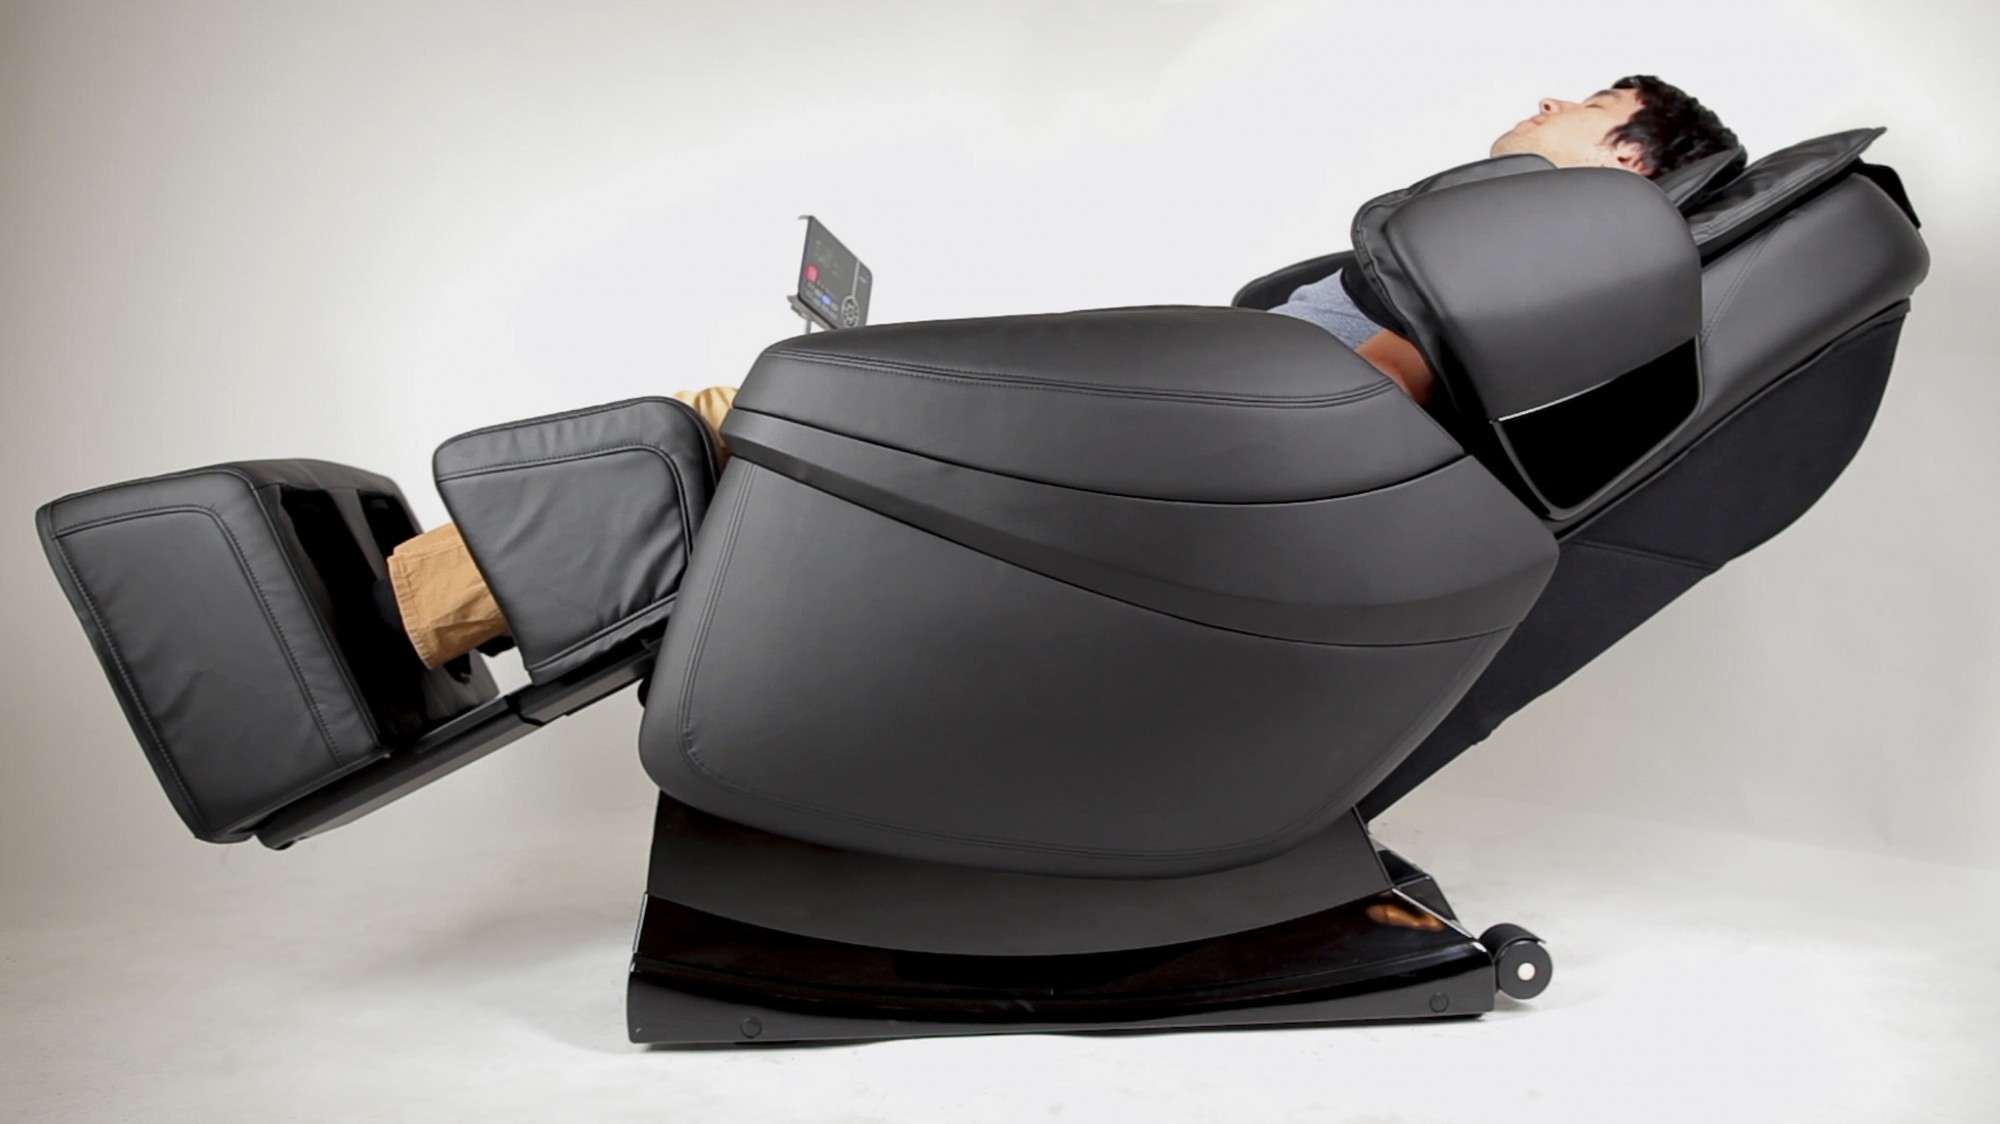 Contemporary massage chair robo-pad in action sqgebjq